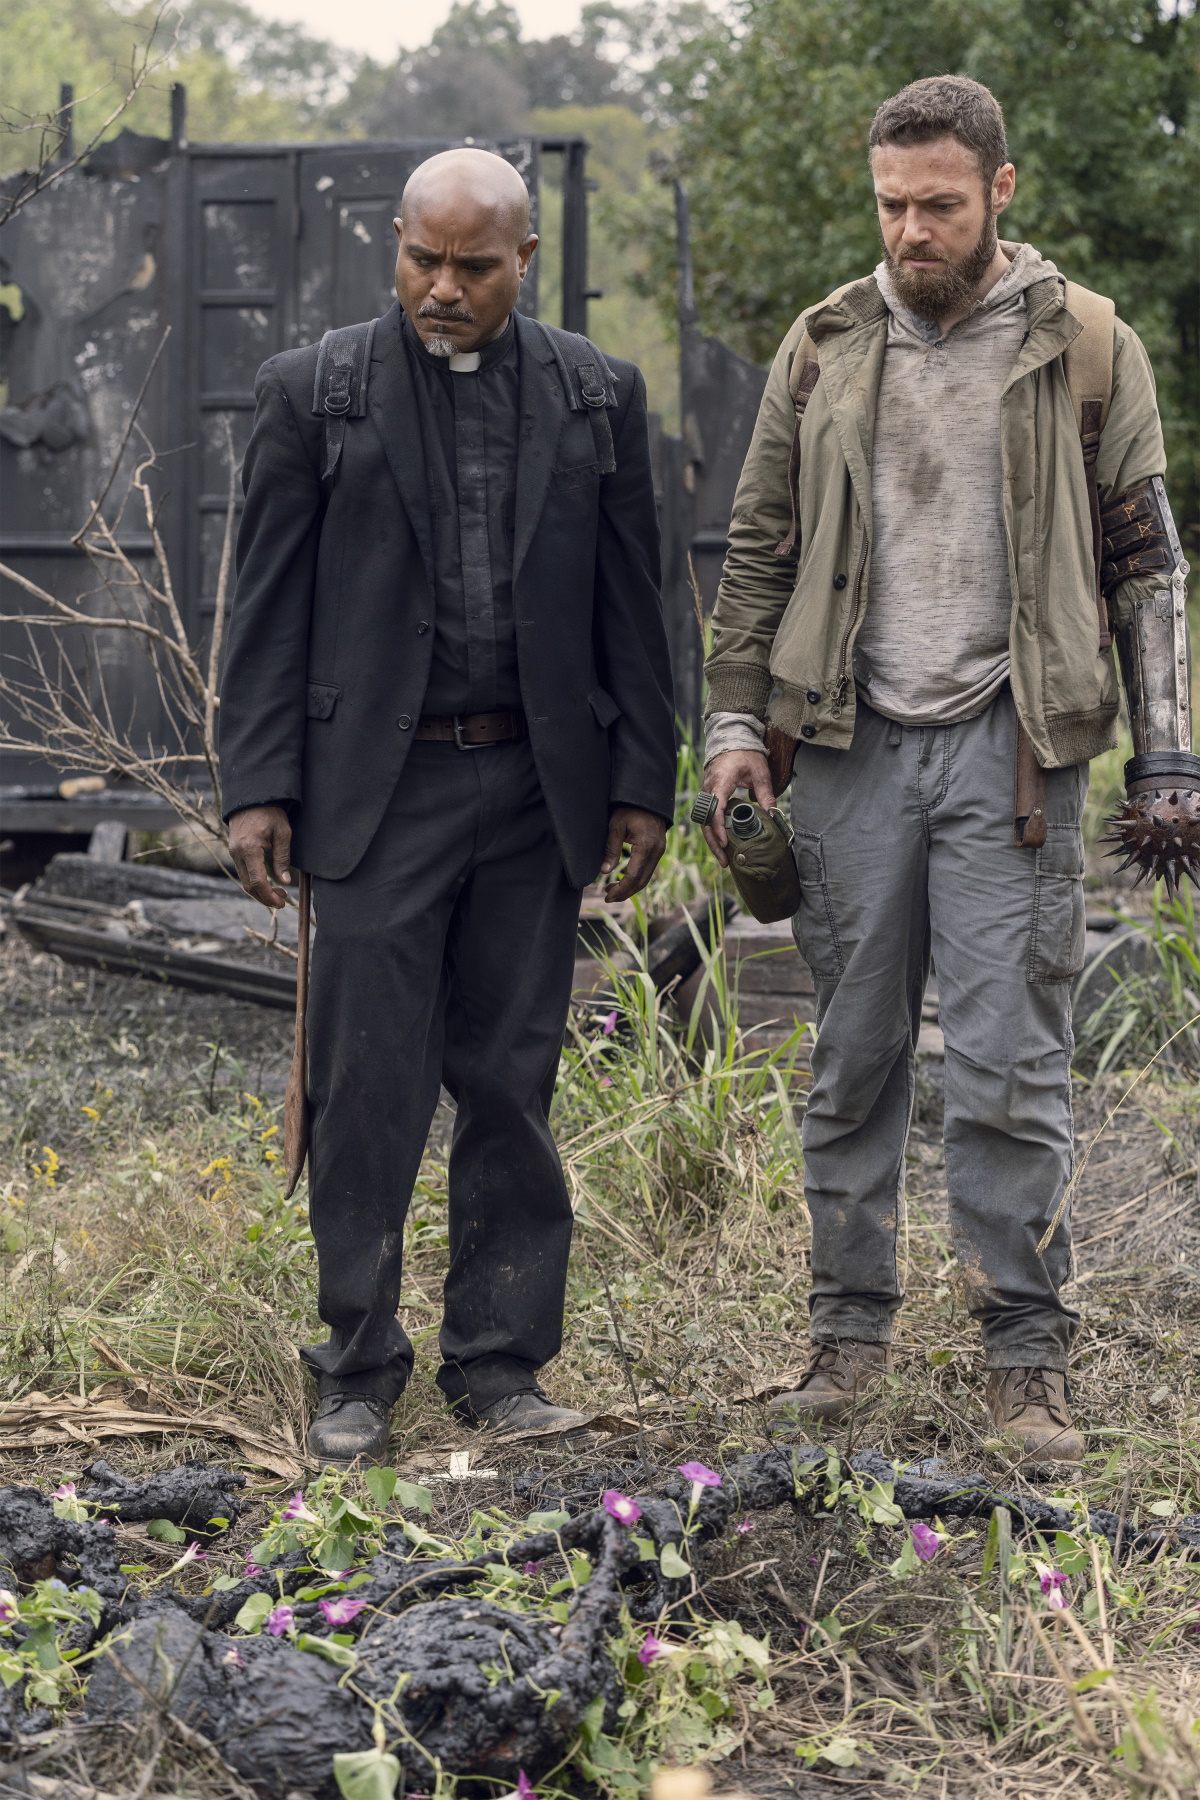 Ross Marquand as Father Gabriel and Ross Marquand as Aaron, as seen in Episode 19 of AMC's The Walking Dead Season 10C